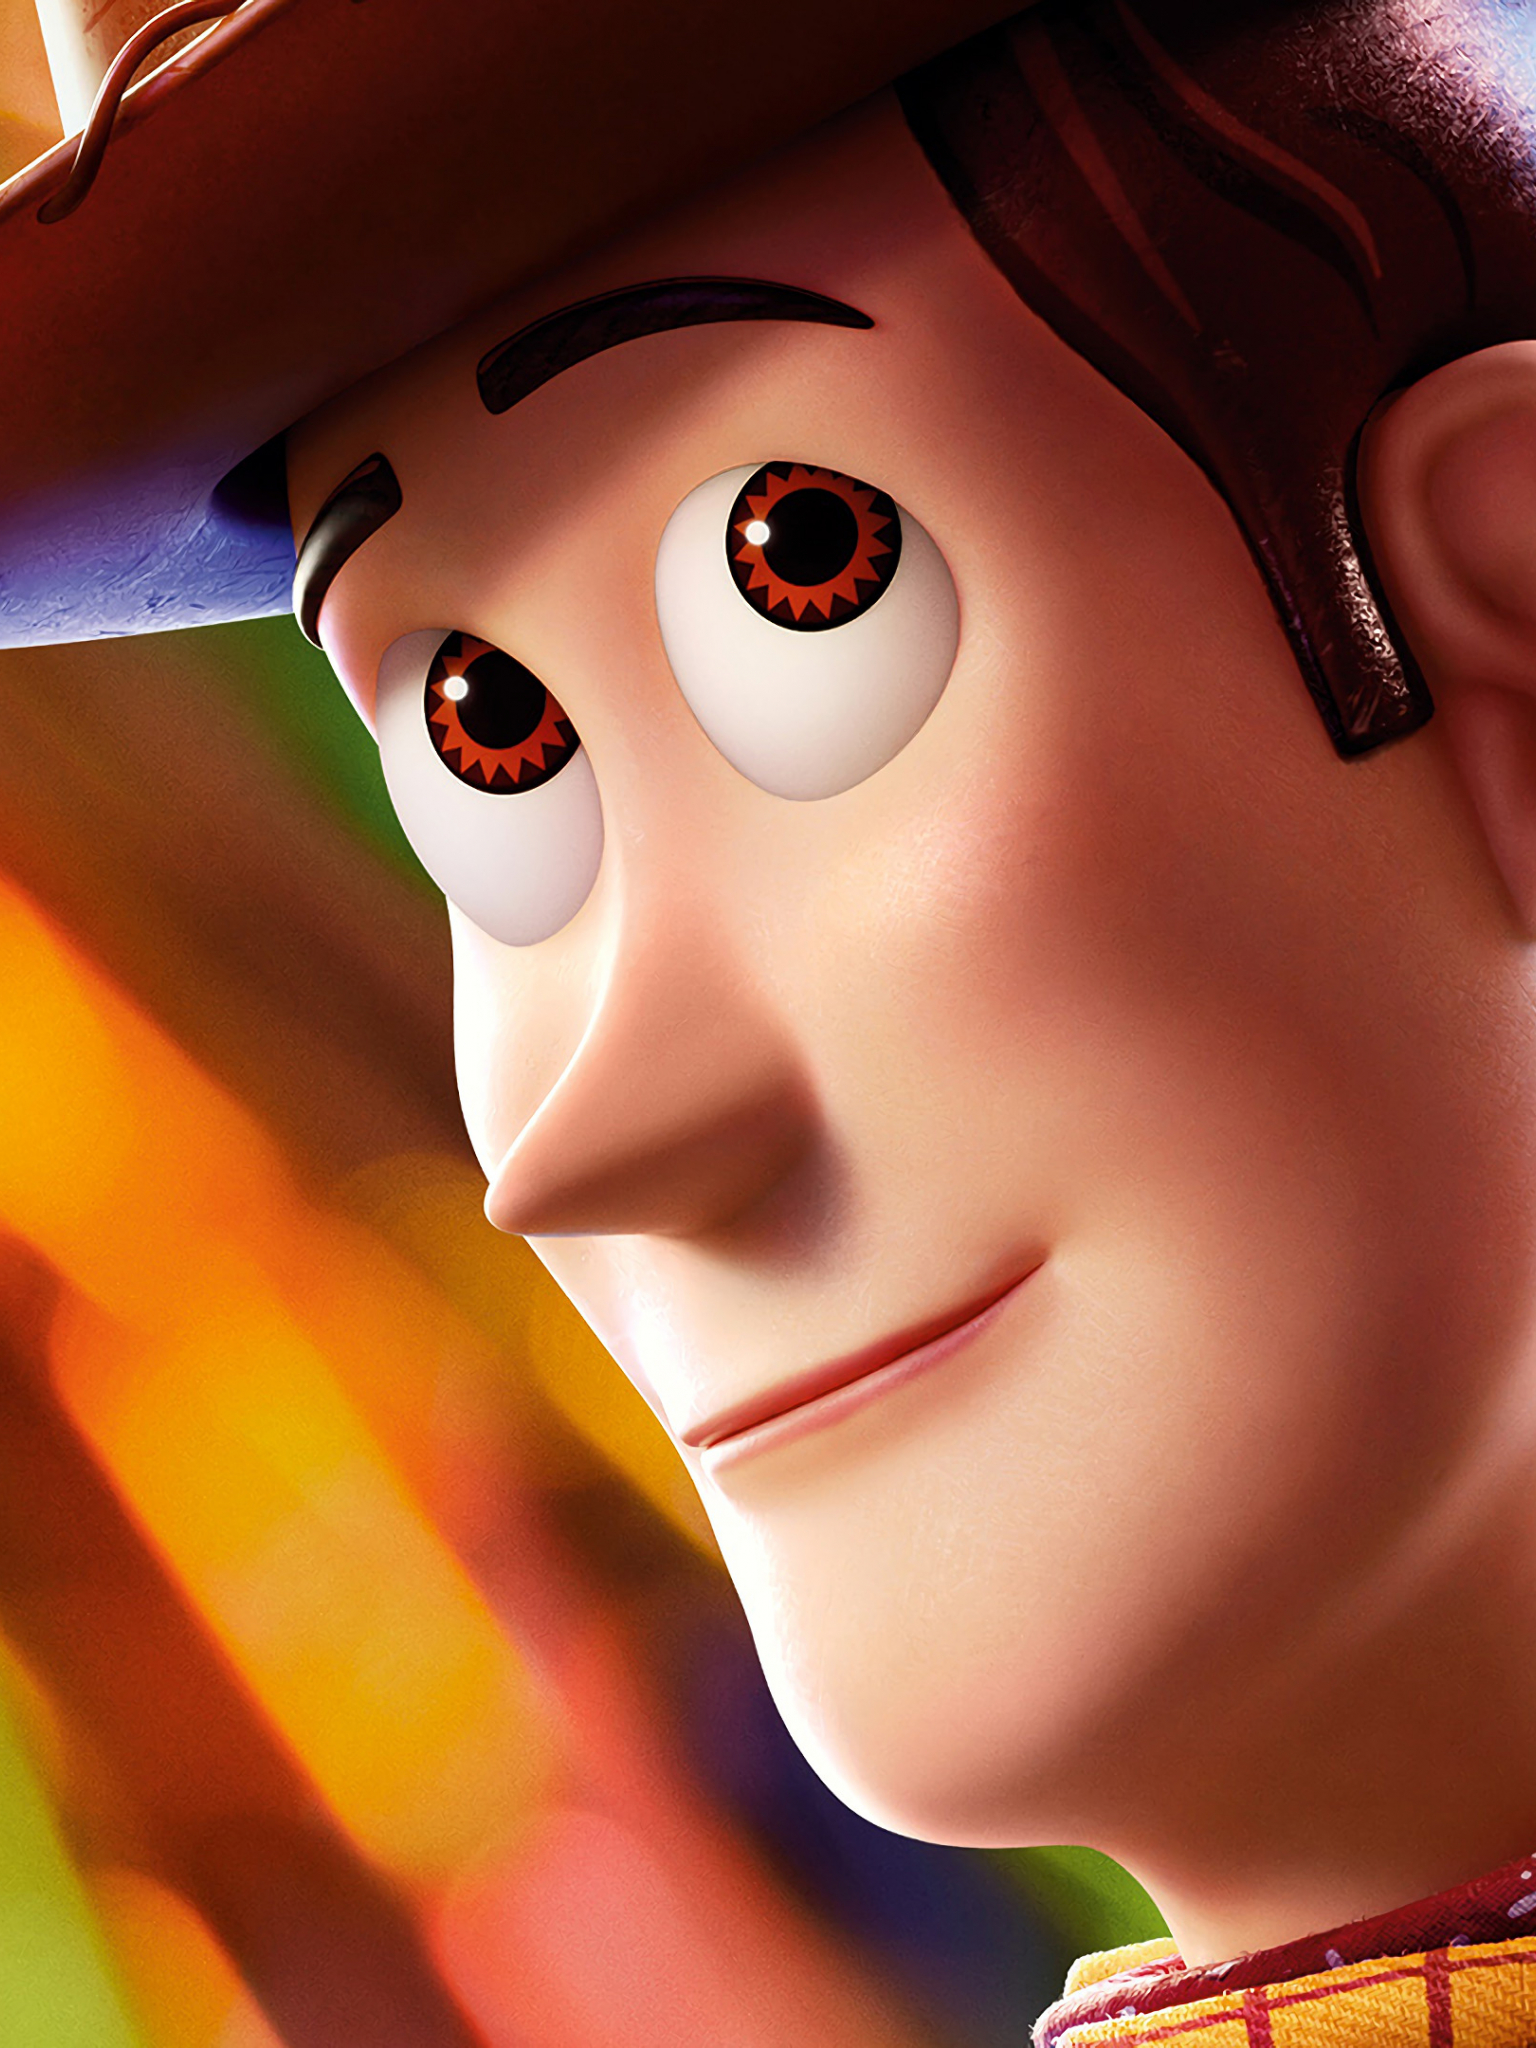 Free Download Toy Story 4 Woody Wallpaper 4k Ultra Hd Id3325